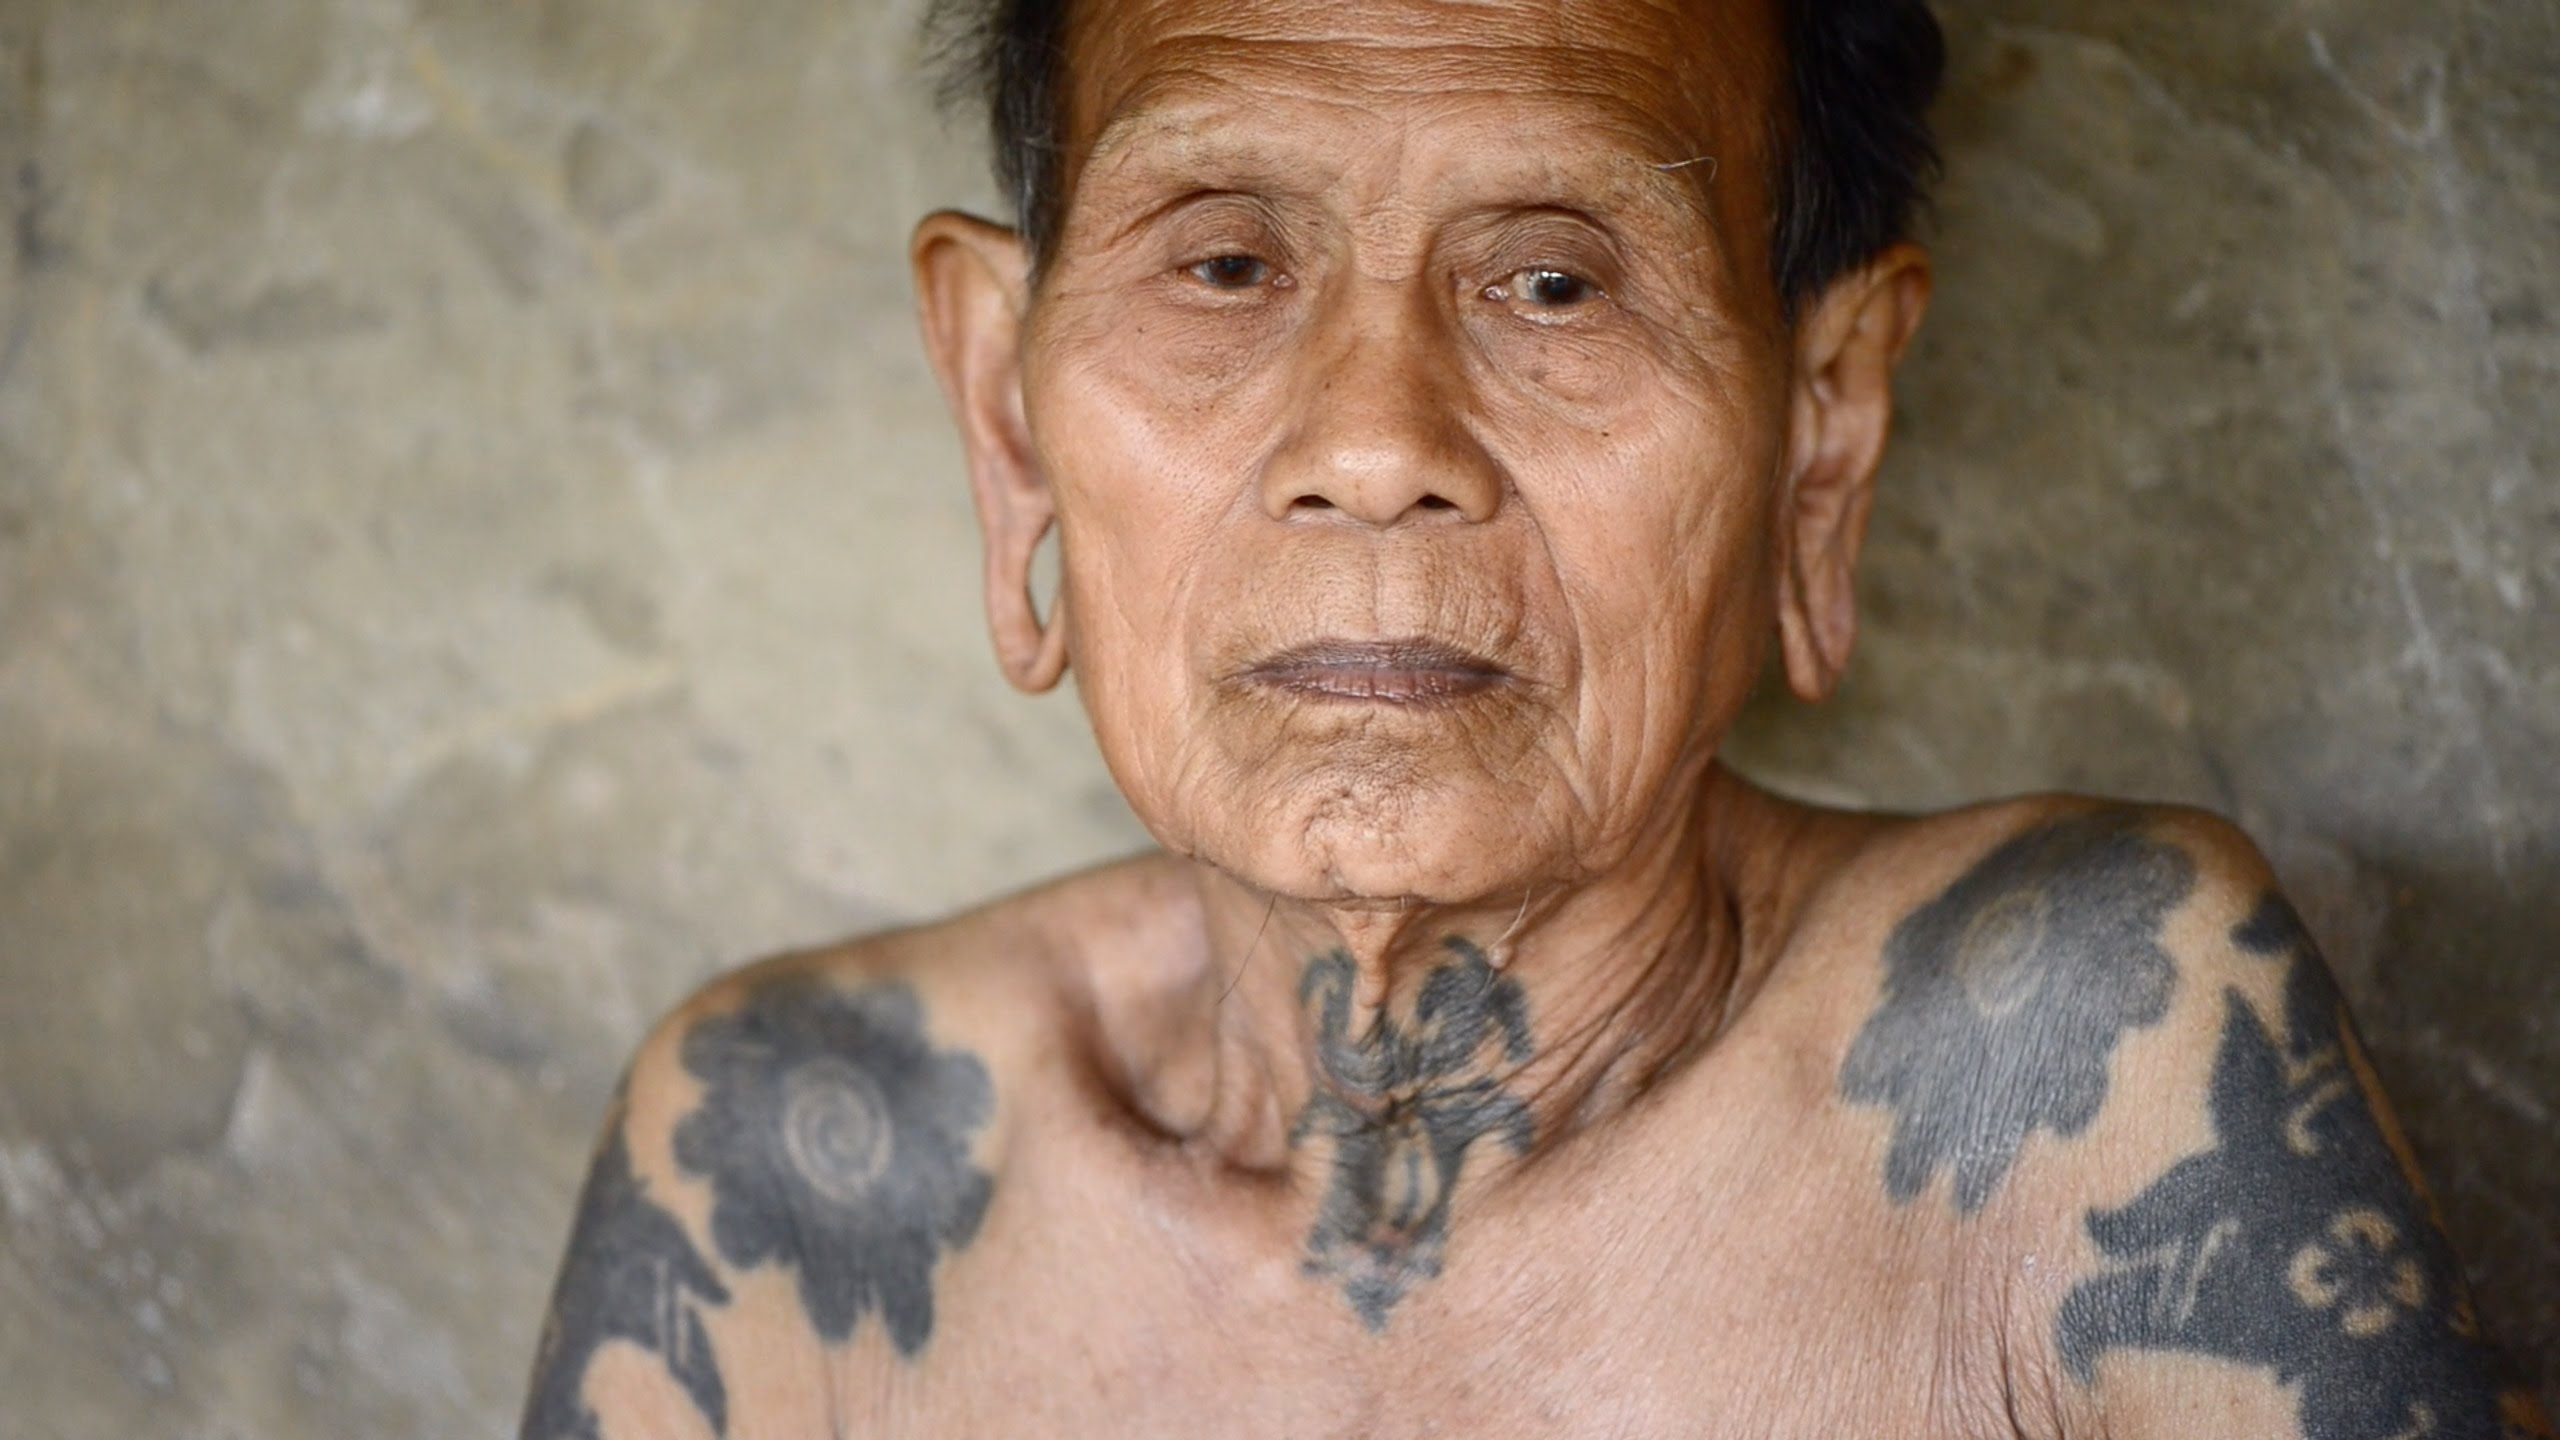 Māori Tattoos History Practice And Meanings: Sarawak's Tribal Tattoos Have An Ancient History Not Many